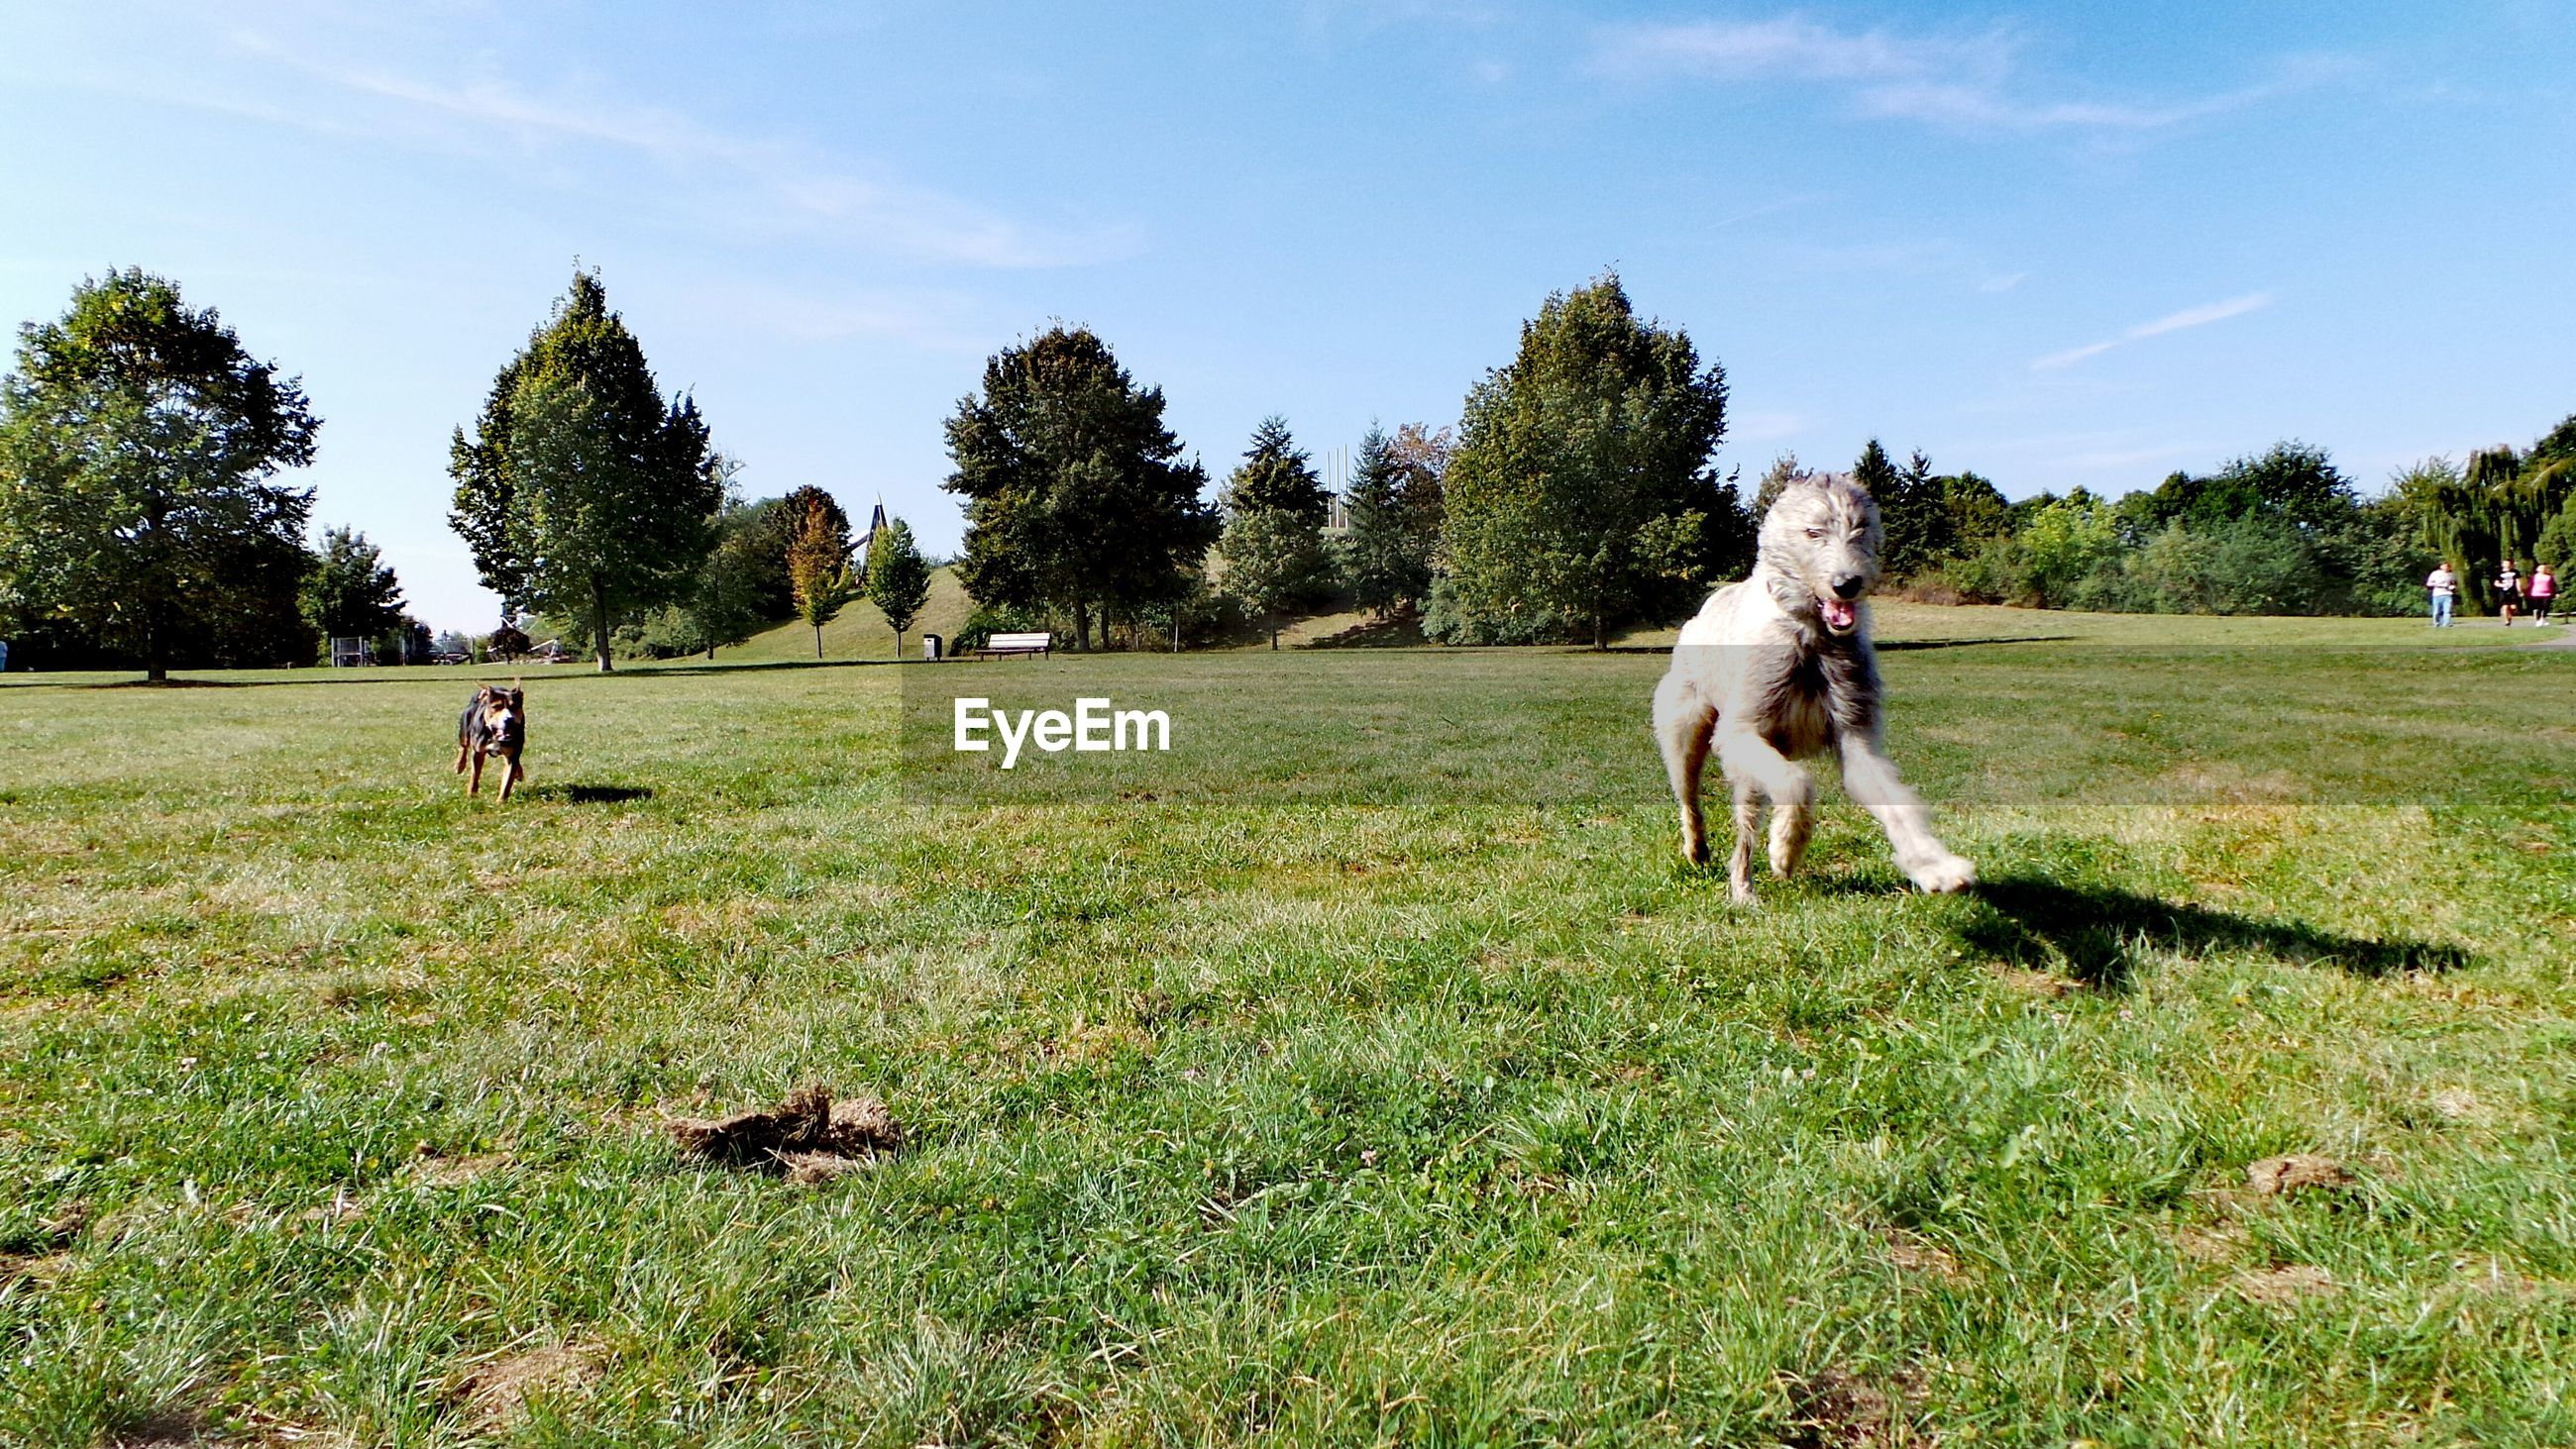 Dogs running on grassy field against sky during sunny day